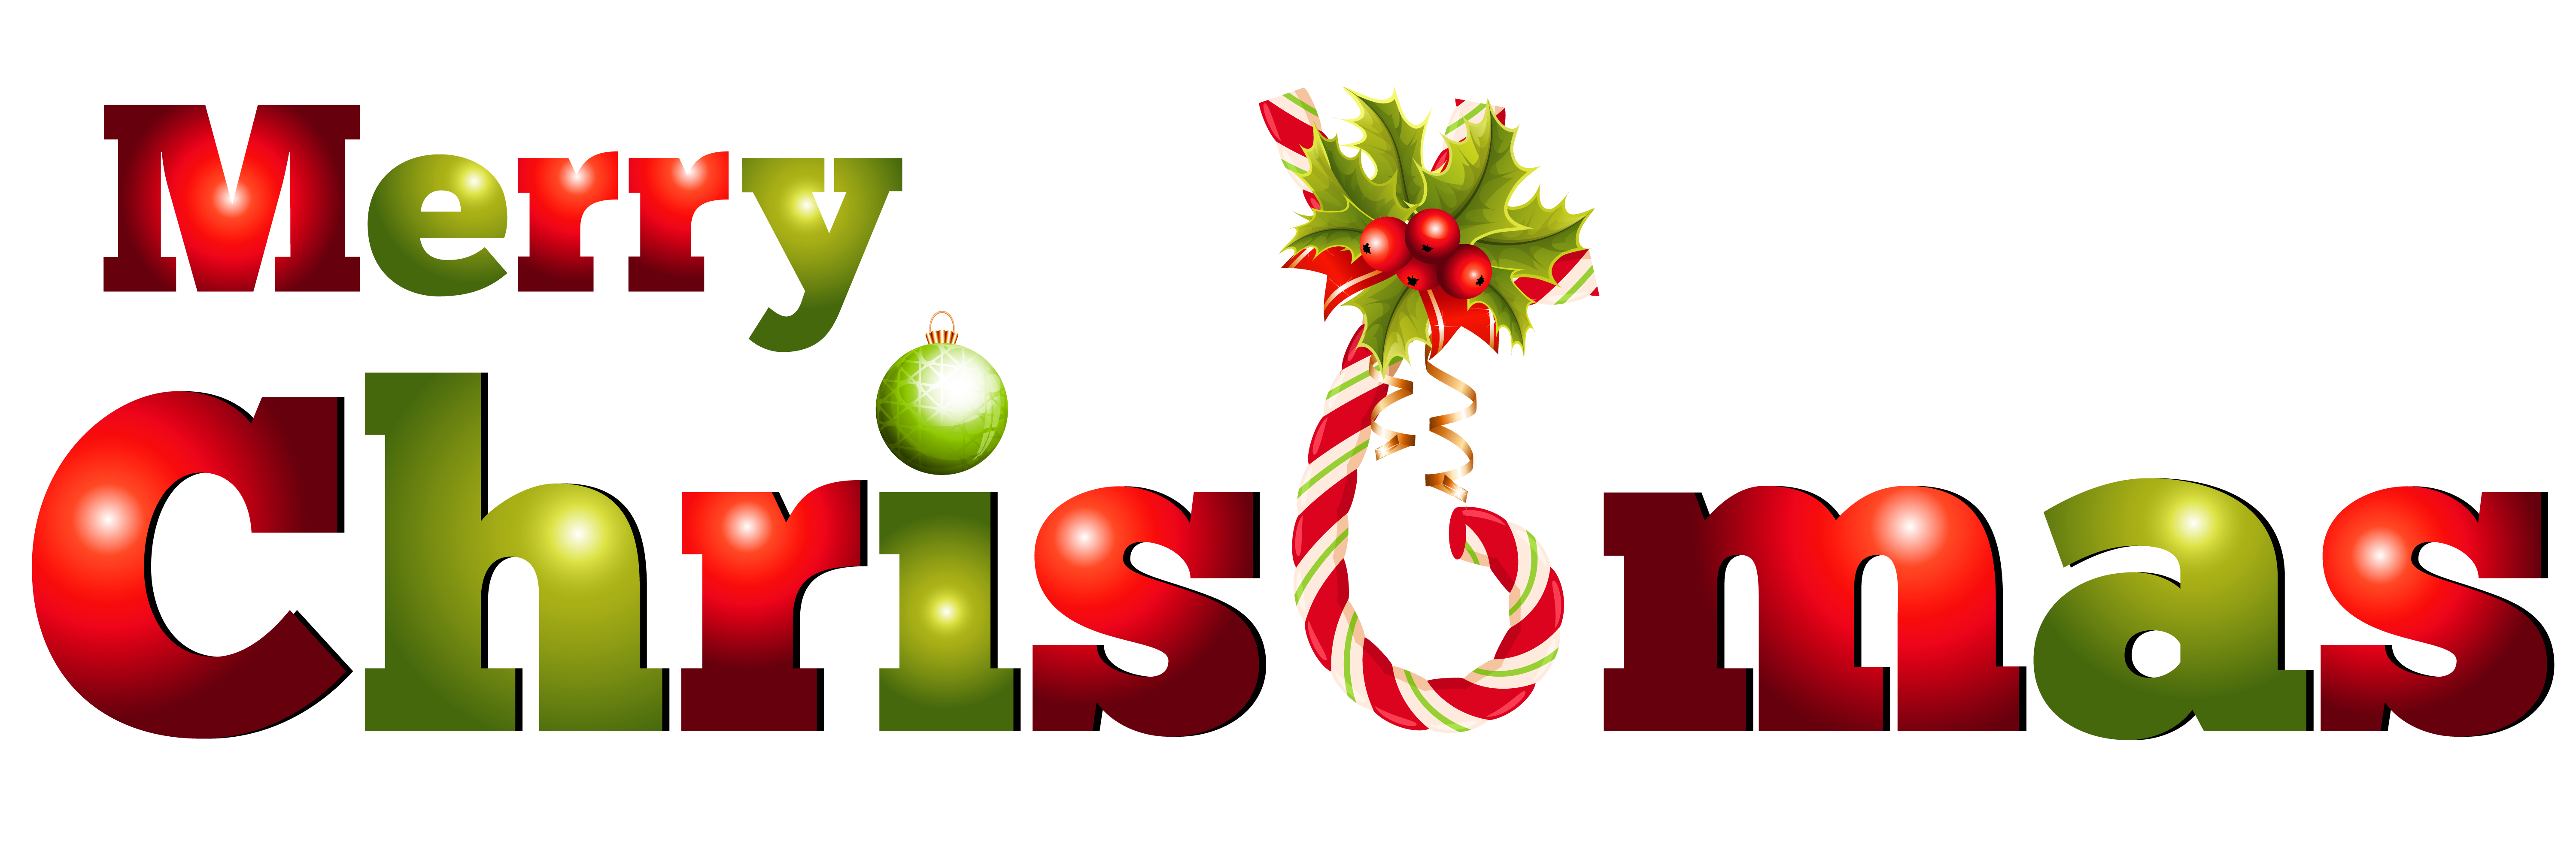 Merry Christmas Clip Art Banners.